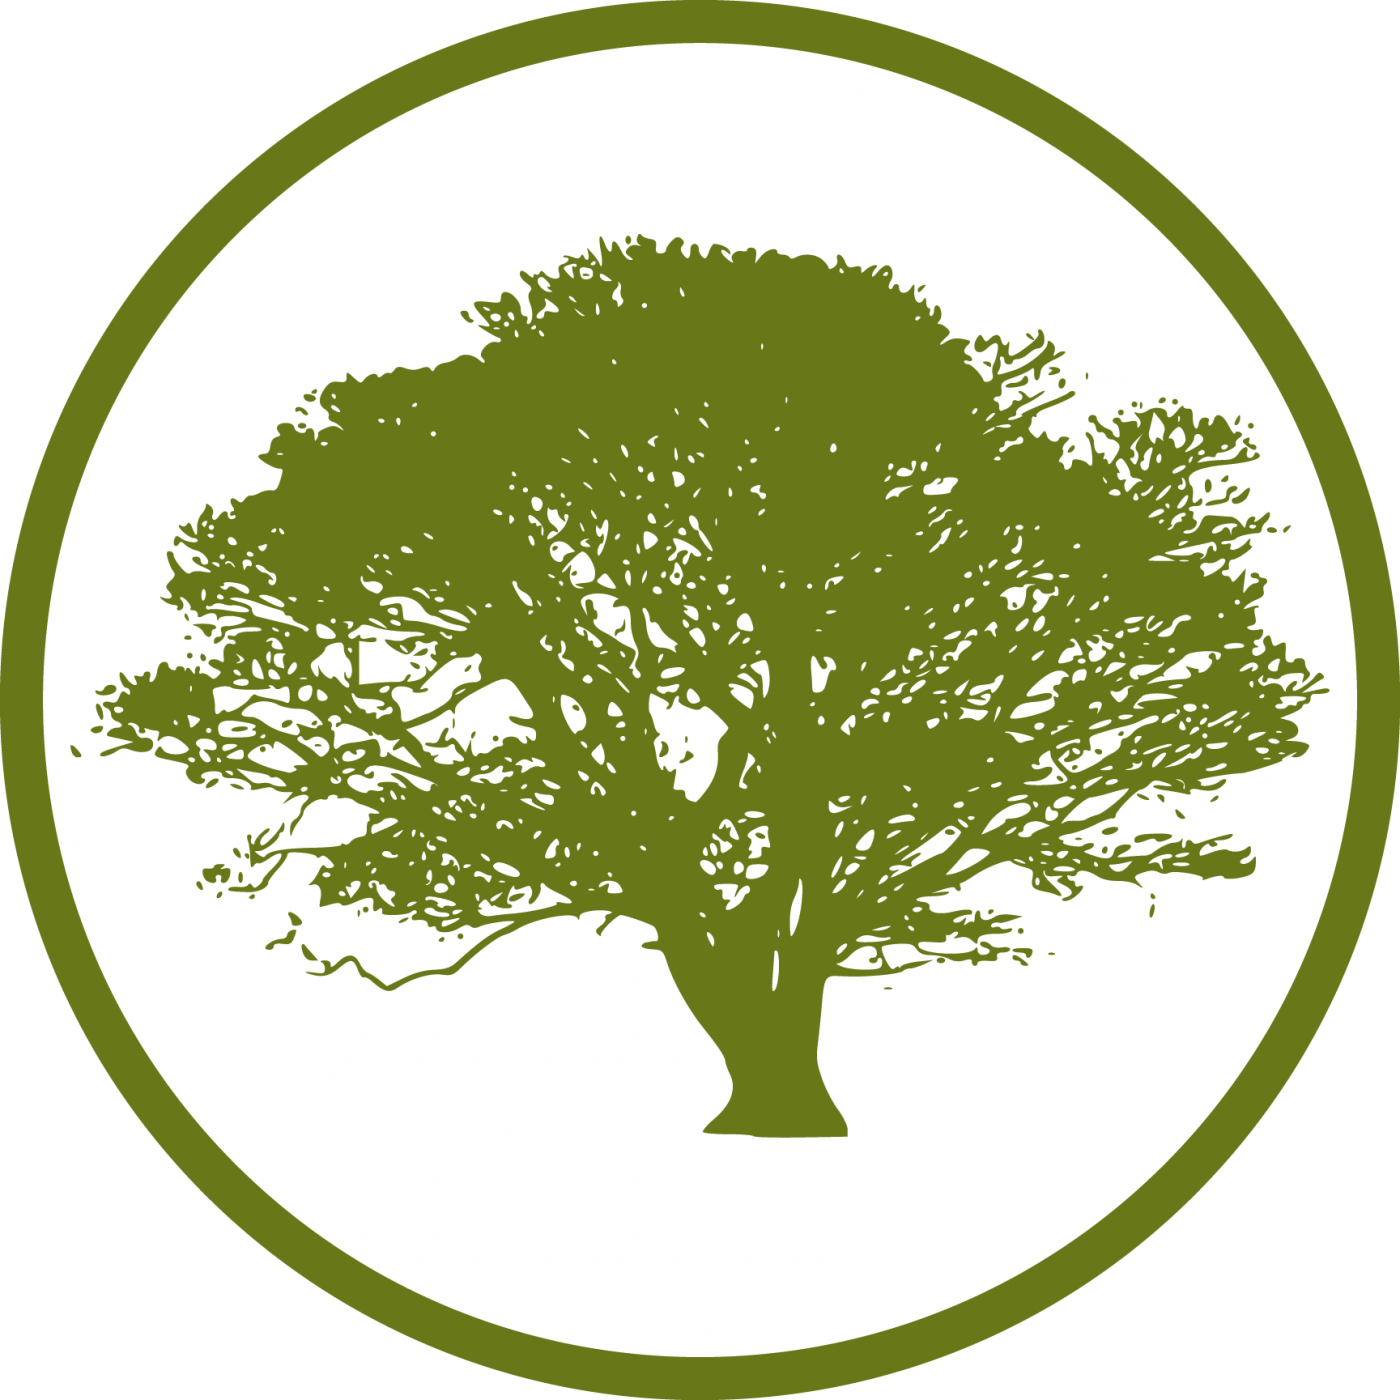 Tree icon png. Cropped martin forestry sawtelle